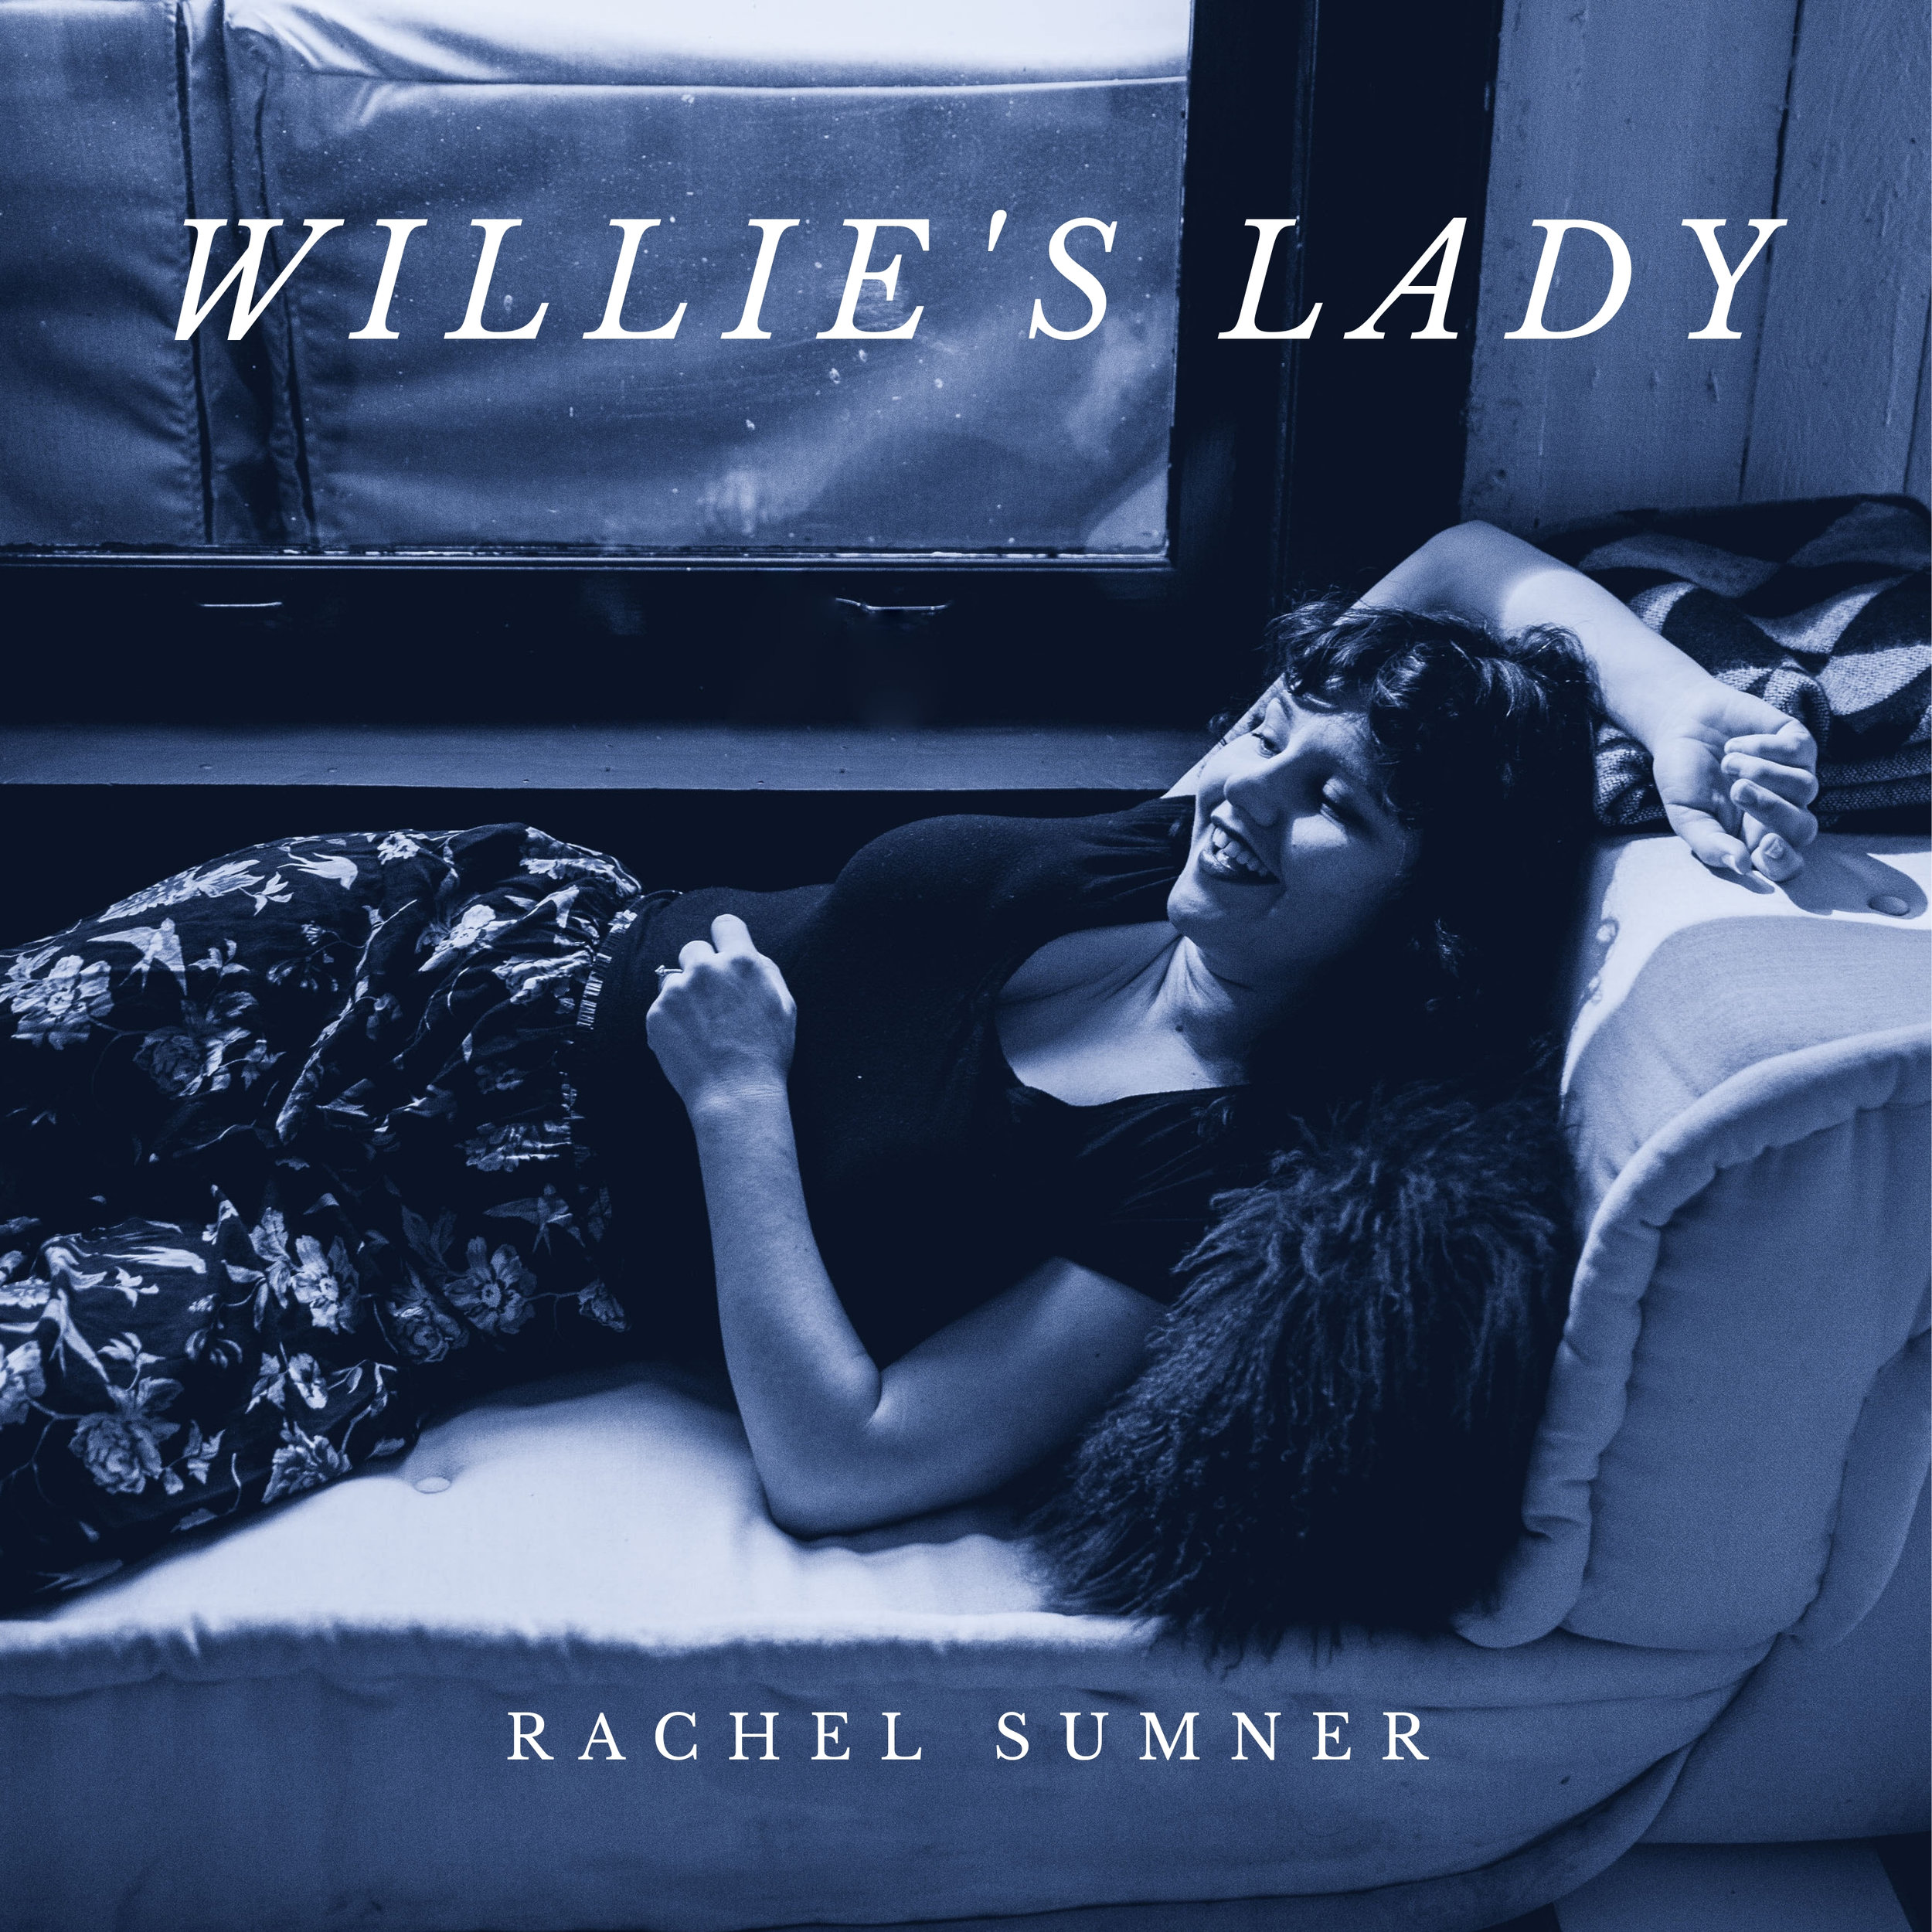 Willies lady_rachel sumner.jpg